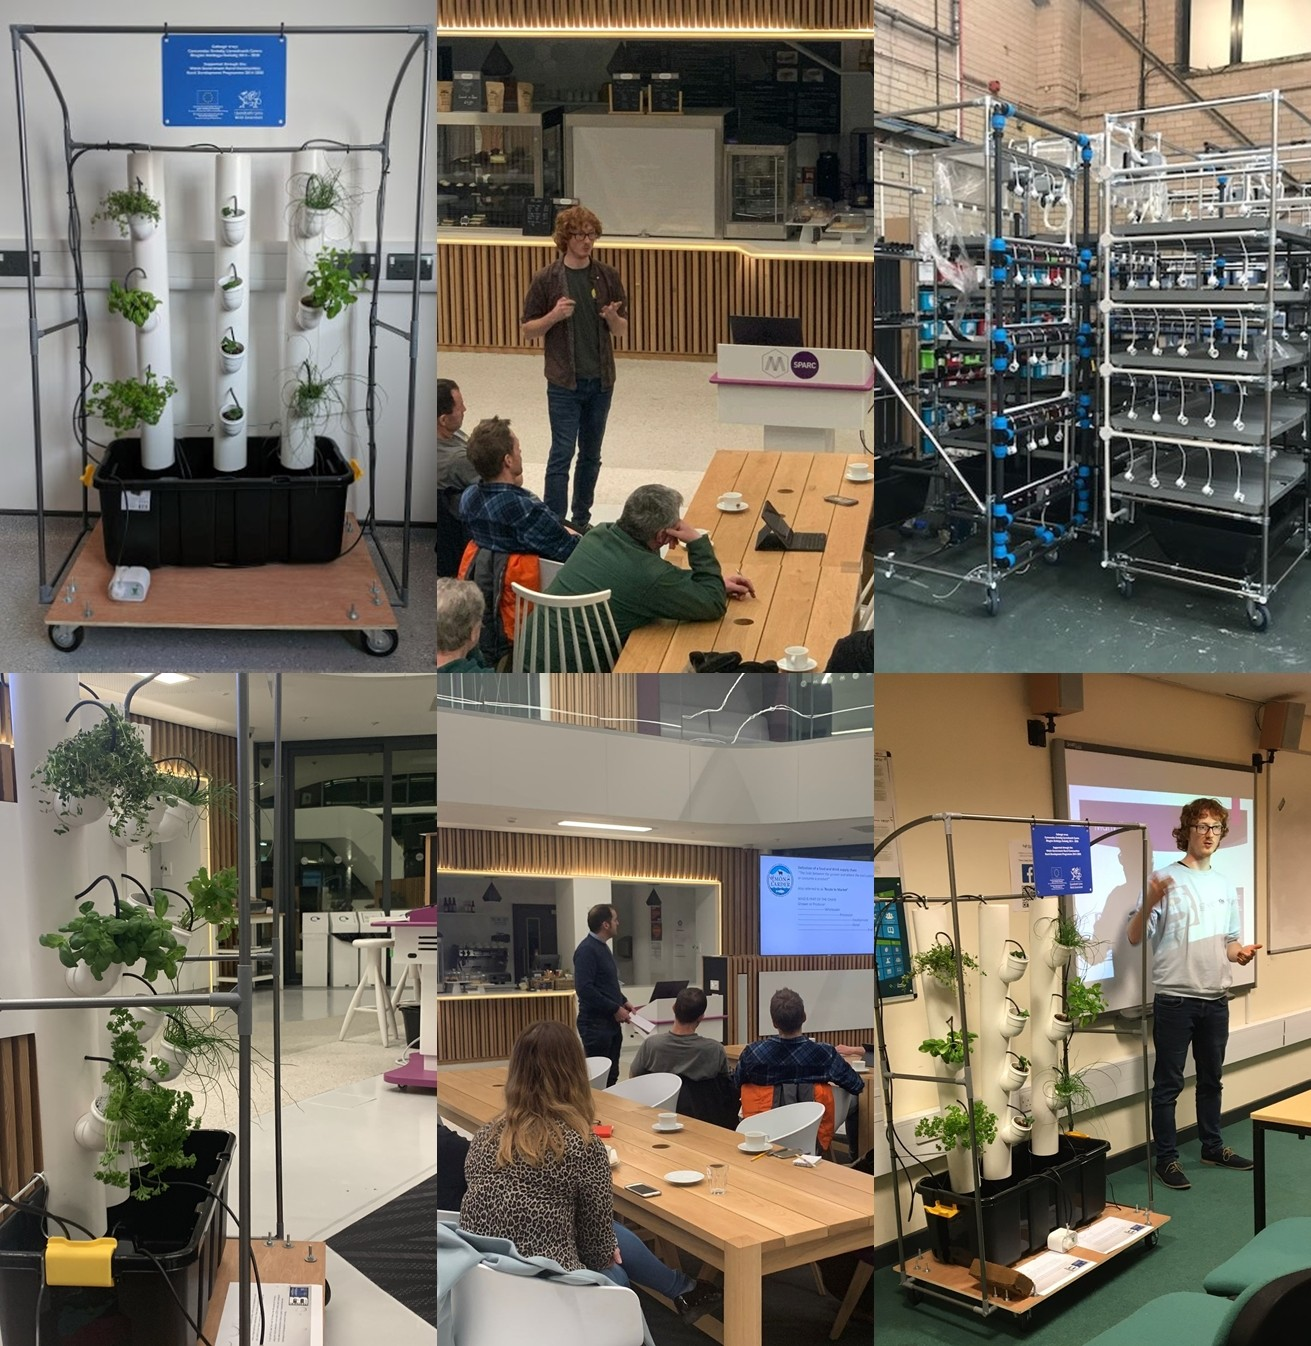 Tech Tyfu – Vertical Farming in North Wales